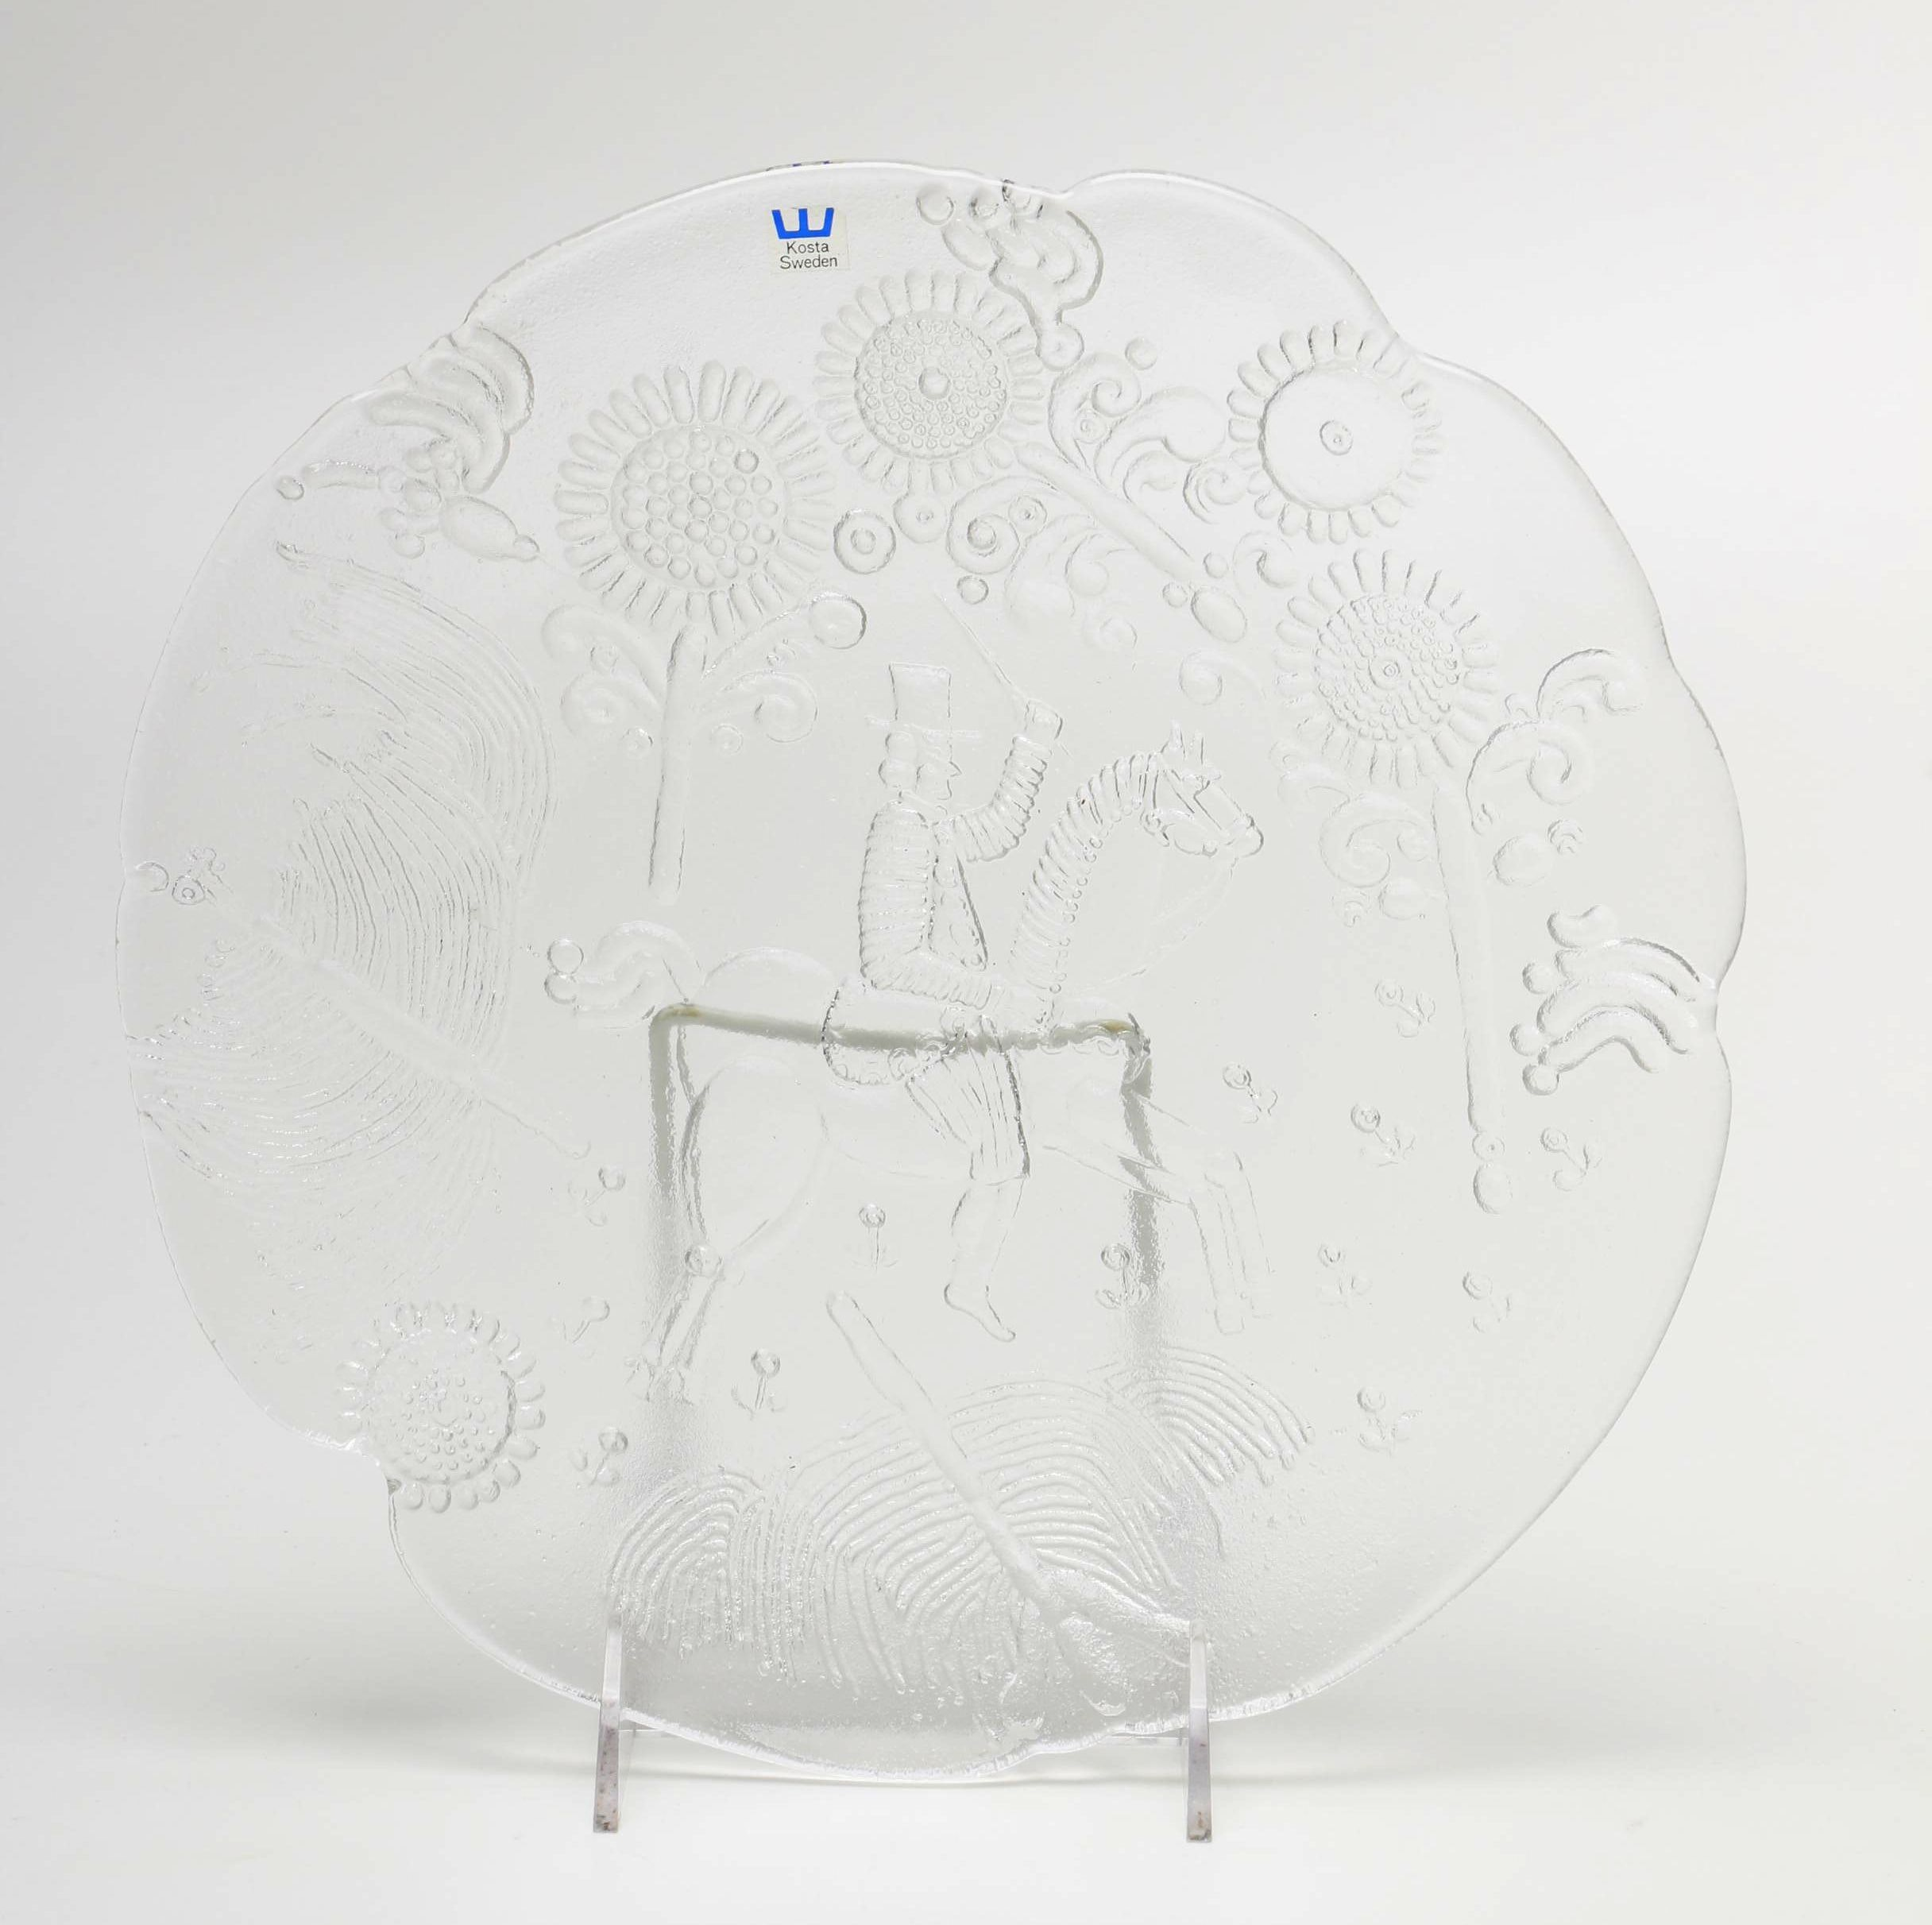 Ann and Göran Wärff Embossed Glass Platter by Kosta